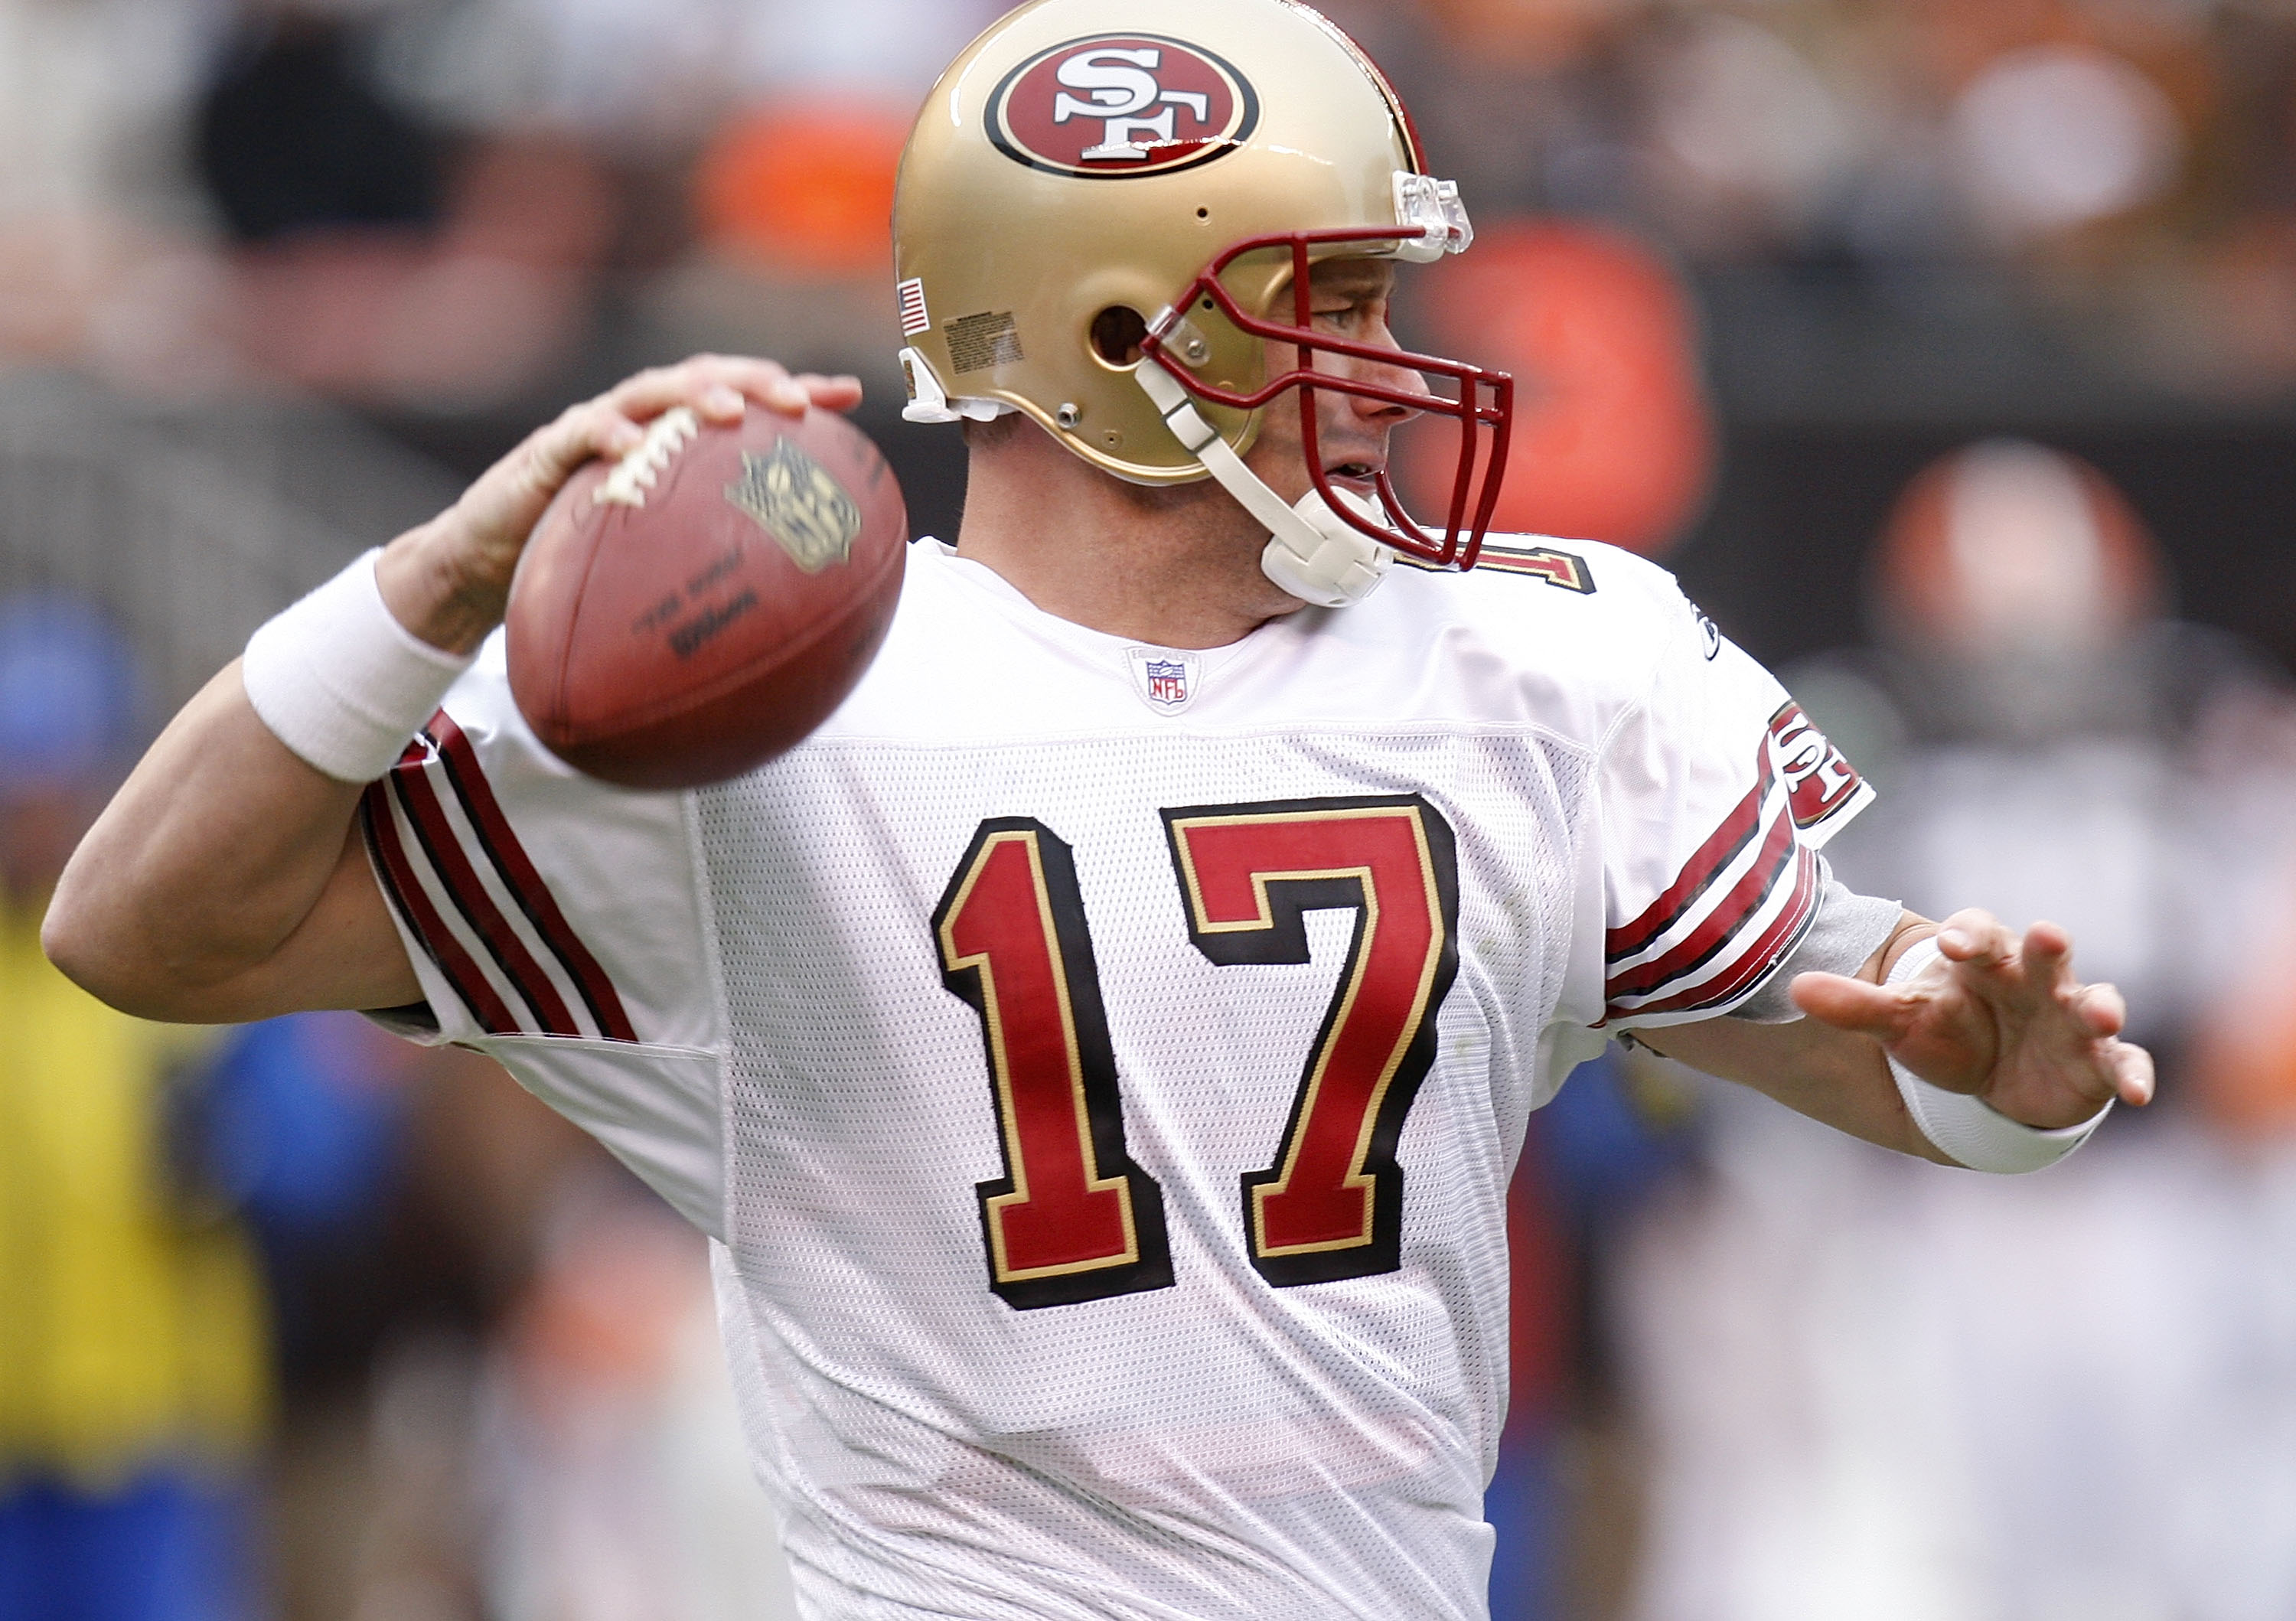 CLEVELAND - DECEMBER 30: Chris Weinke #17 of the San Francisco 49ers throws a second quarter pass against the Cleveland Browns on December 30, 2007 at Cleveland Browns Stadium in Cleveland, Ohio. (Photo By Gregory Shamus/Getty Images)